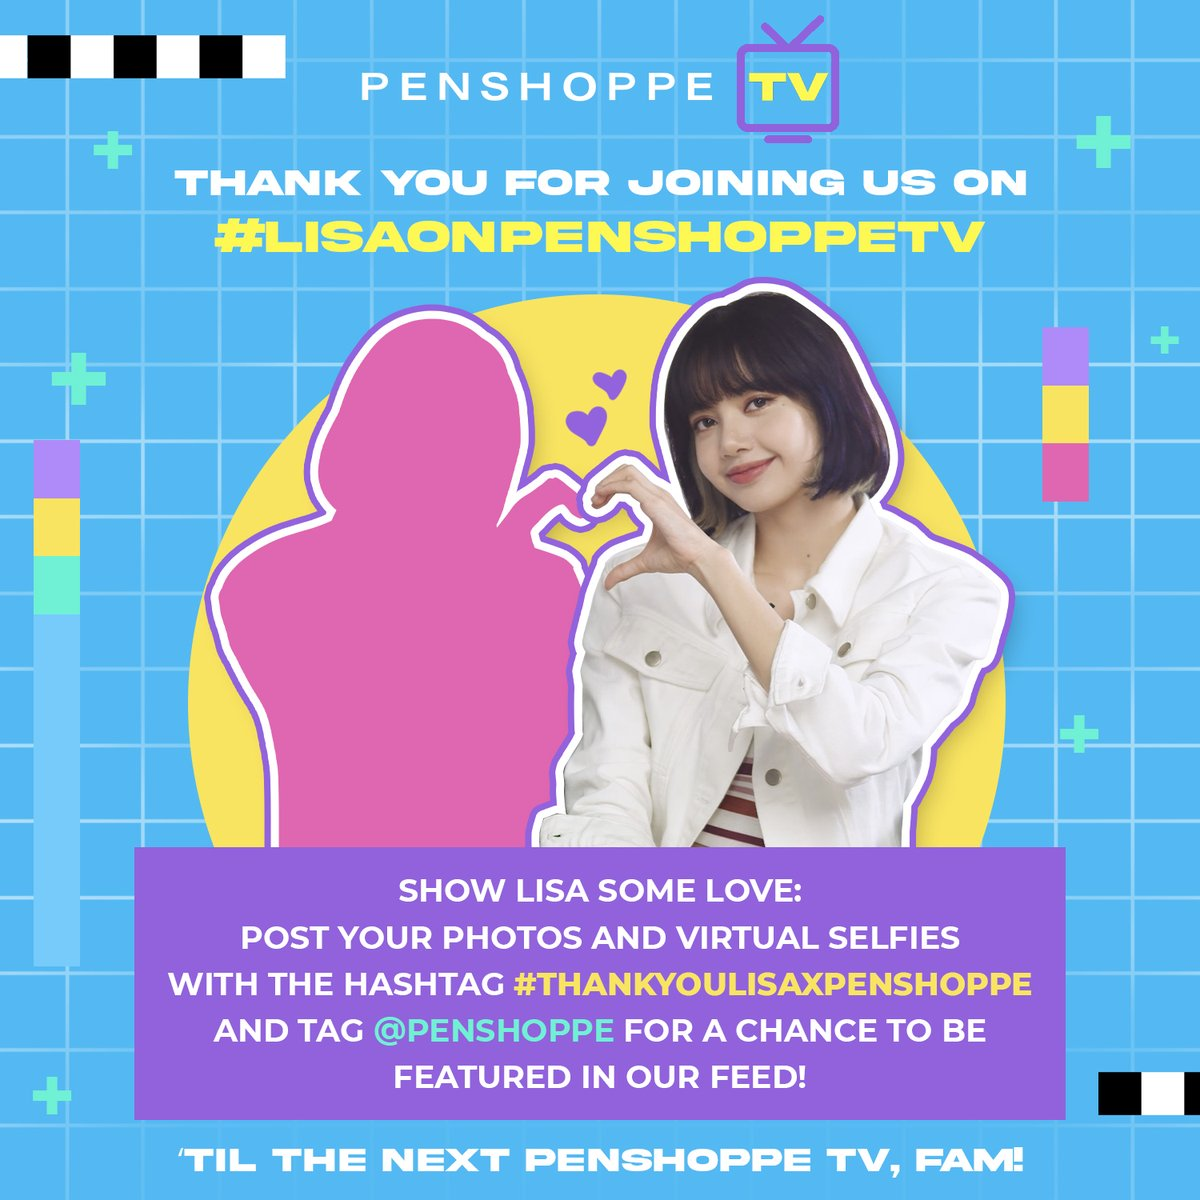 Sending our huge thanks to everyone who joined us on our very first Penshoppe TV, and of course to #LISA for spending her time with us!!✨   Let's show Lisa our love!  🤳 Share your photos with the hashtag #ThankYouLisaxPenshoppe for a chance to be featured in our feed!